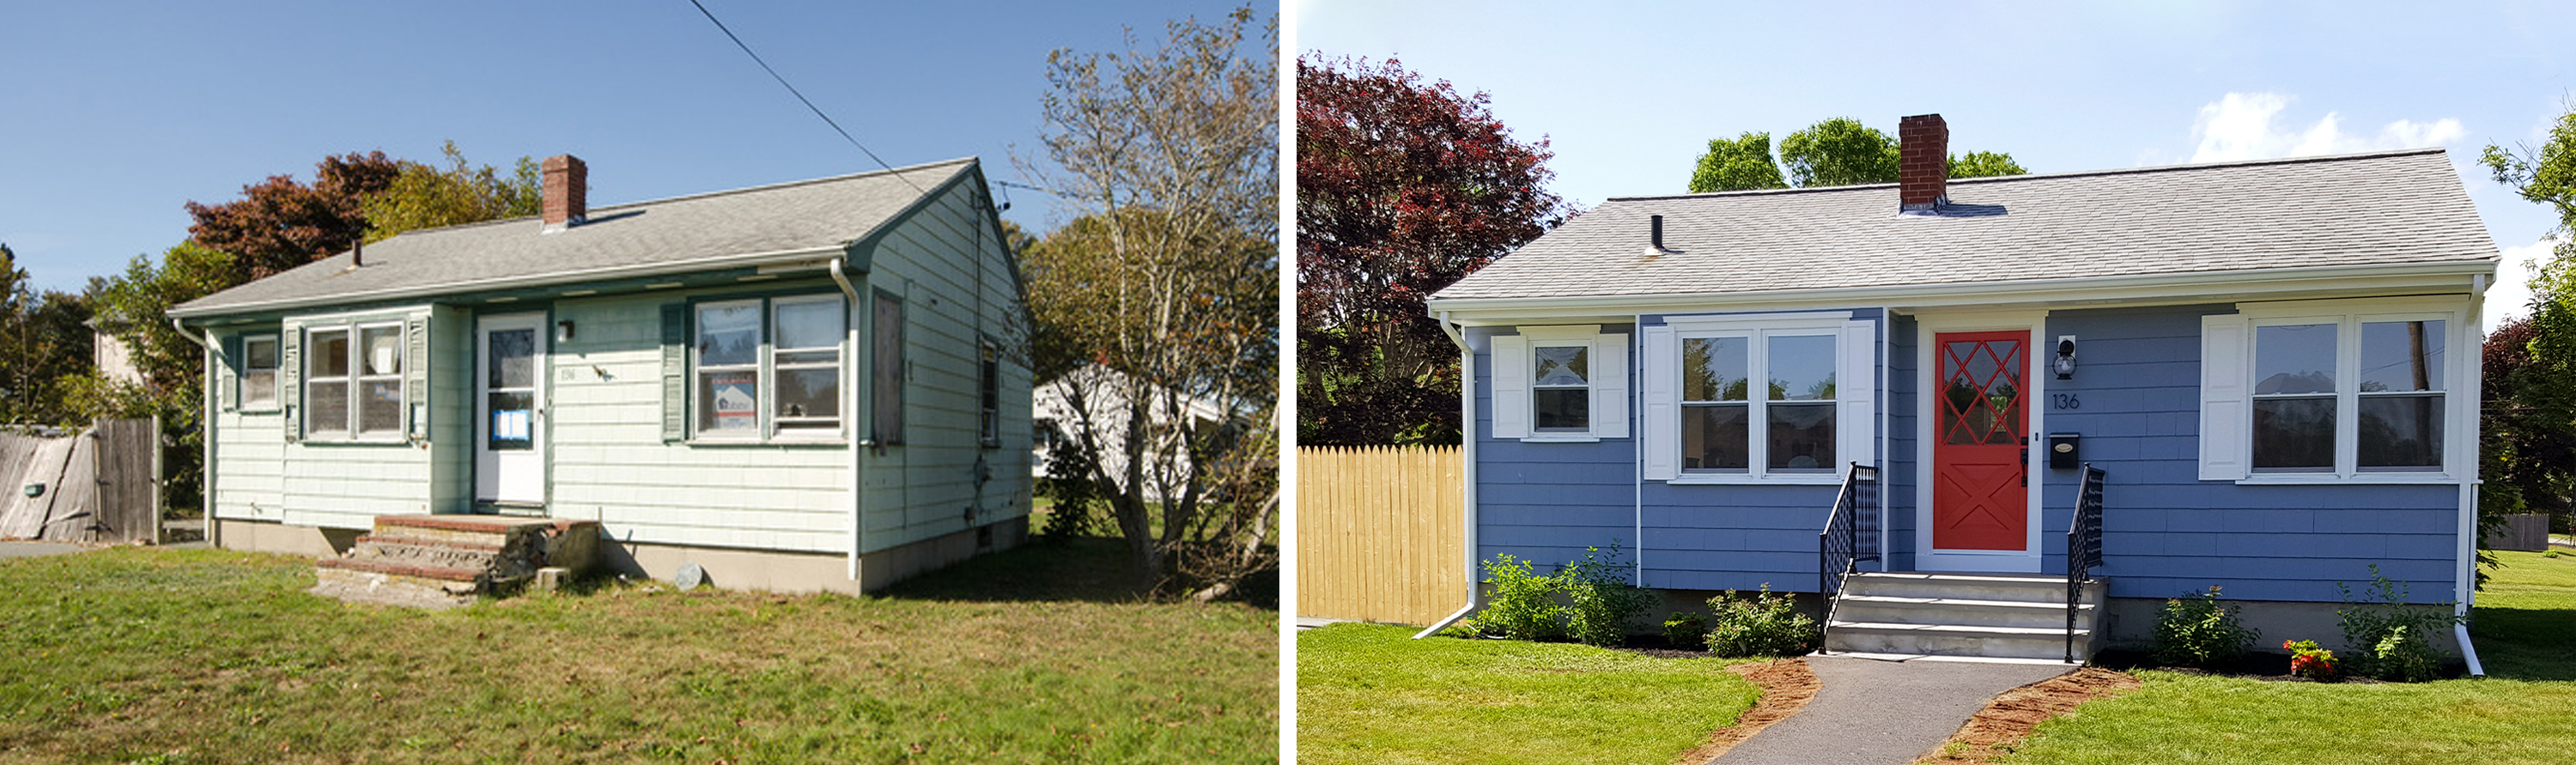 Charming Ranch Makeover Before and After